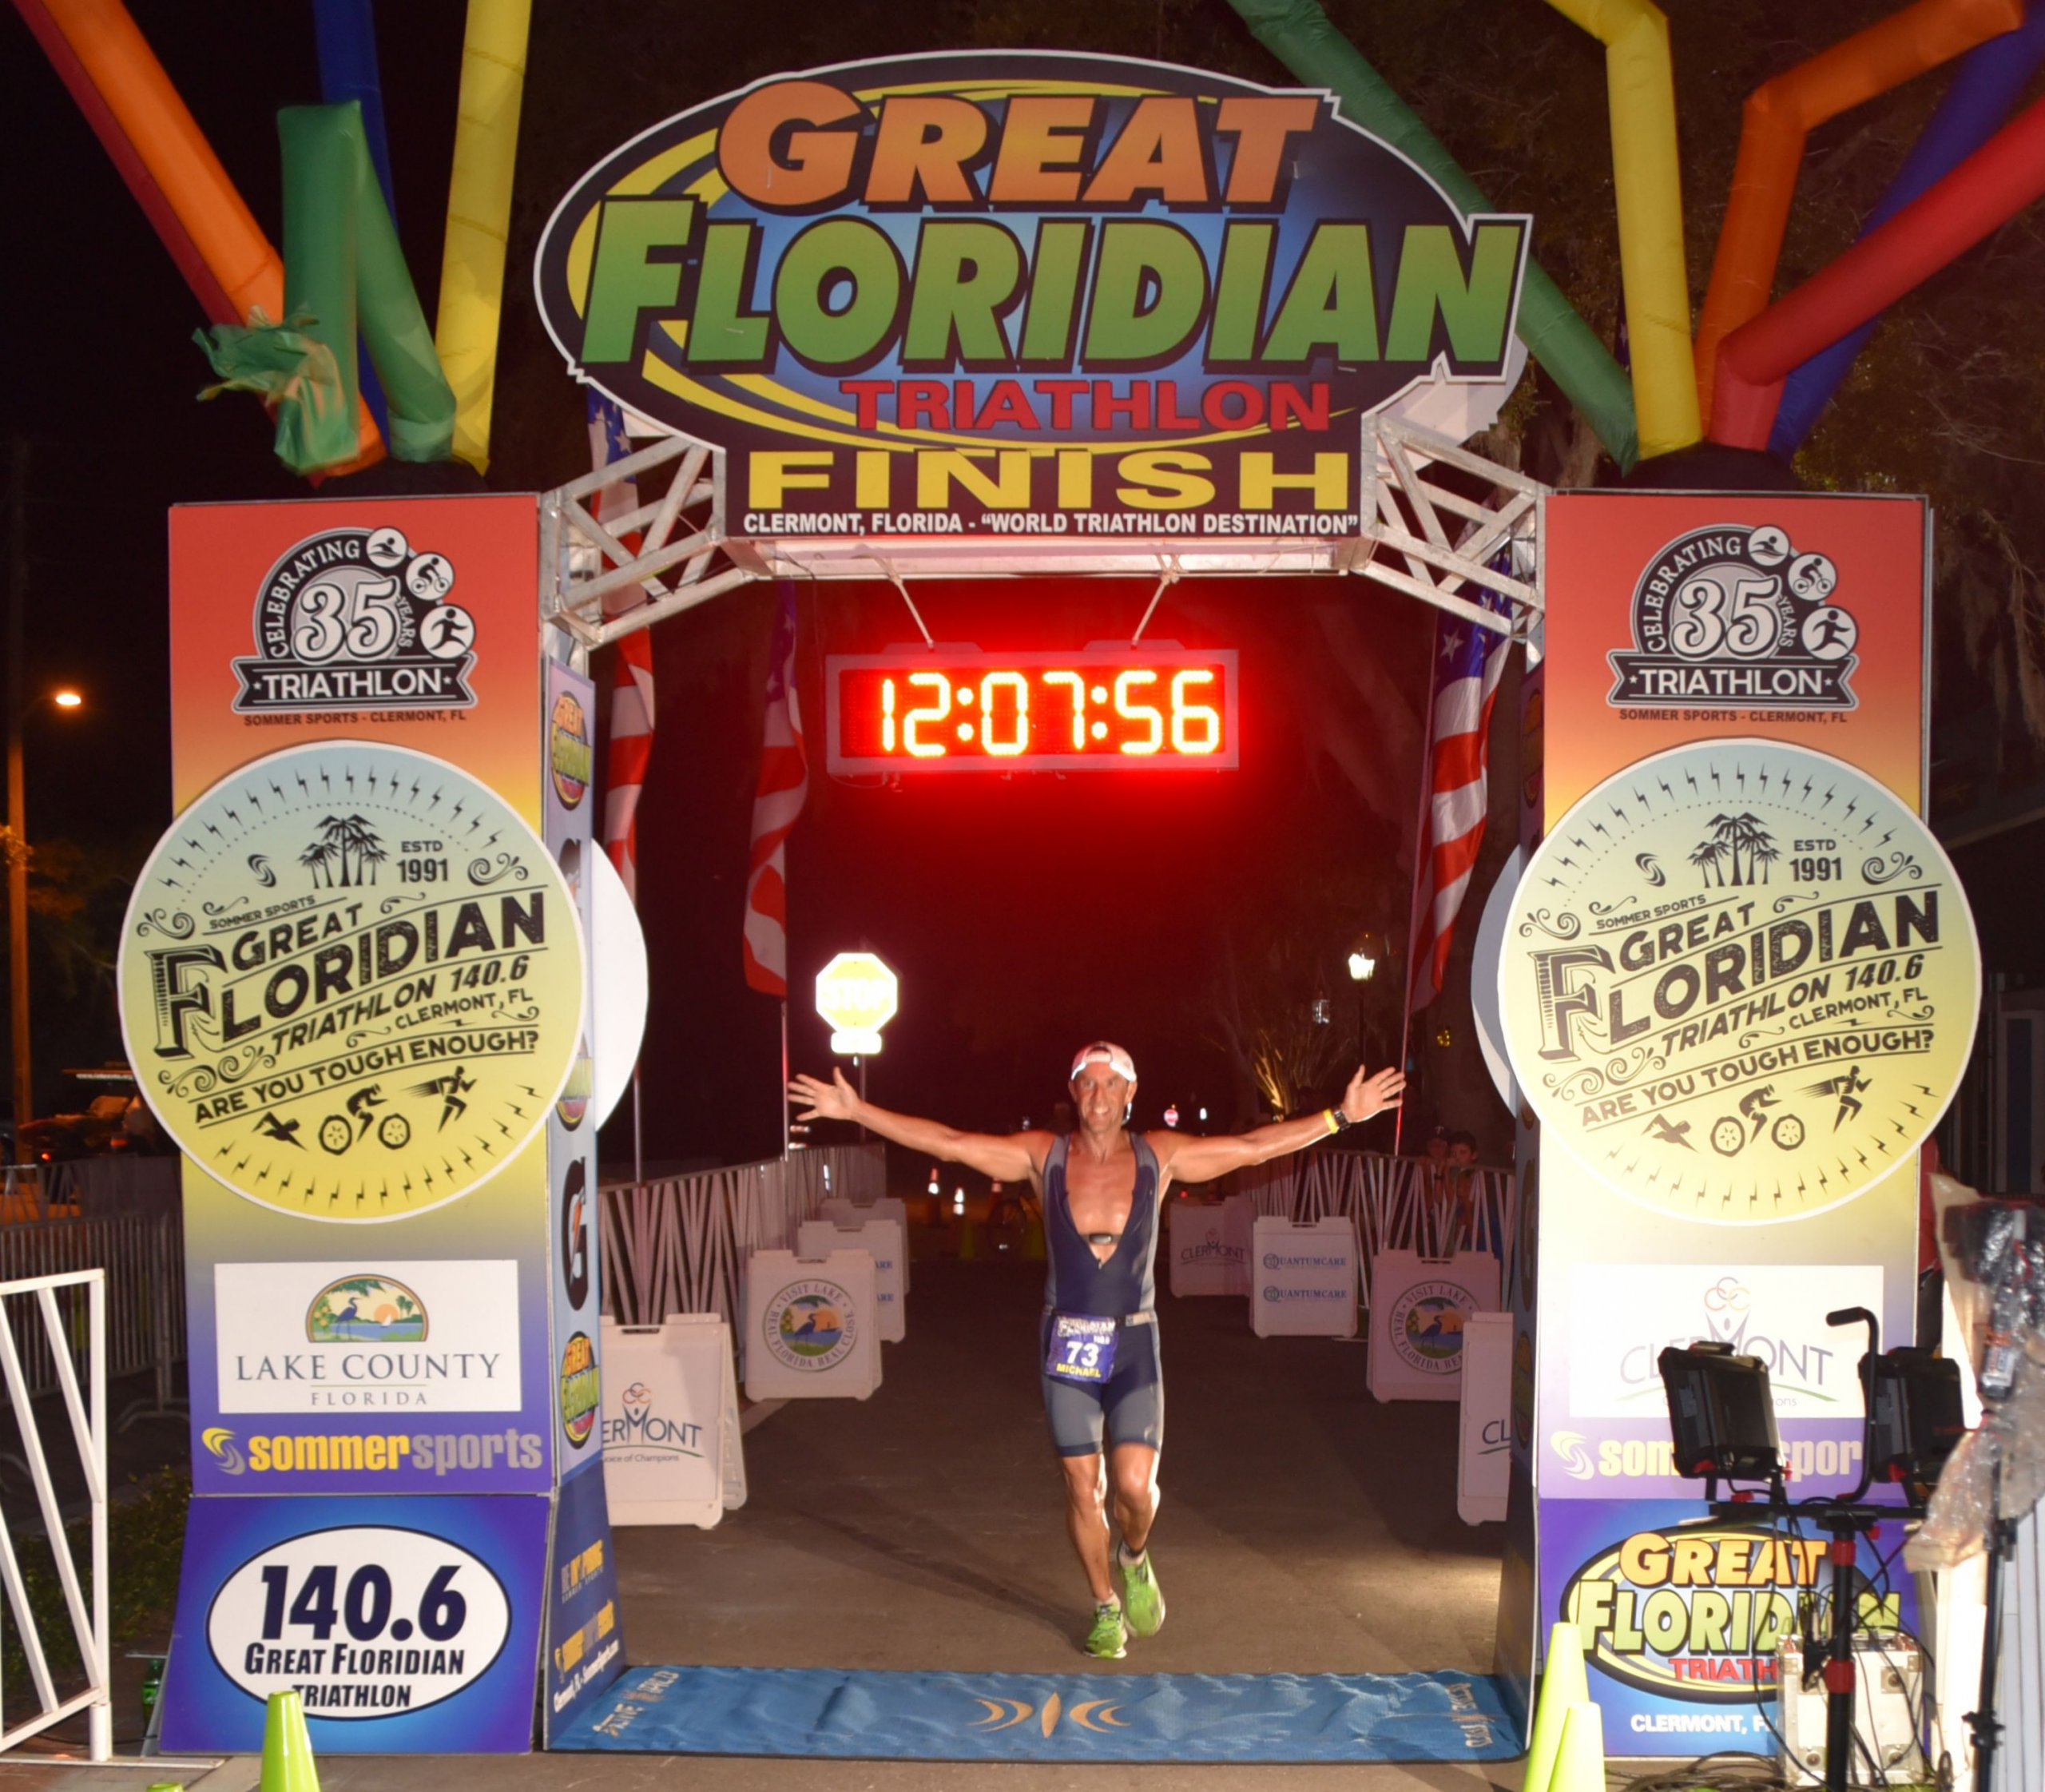 Winning triathlete crossing the fishing line of the great floridian triathlon, time says 12:07:56